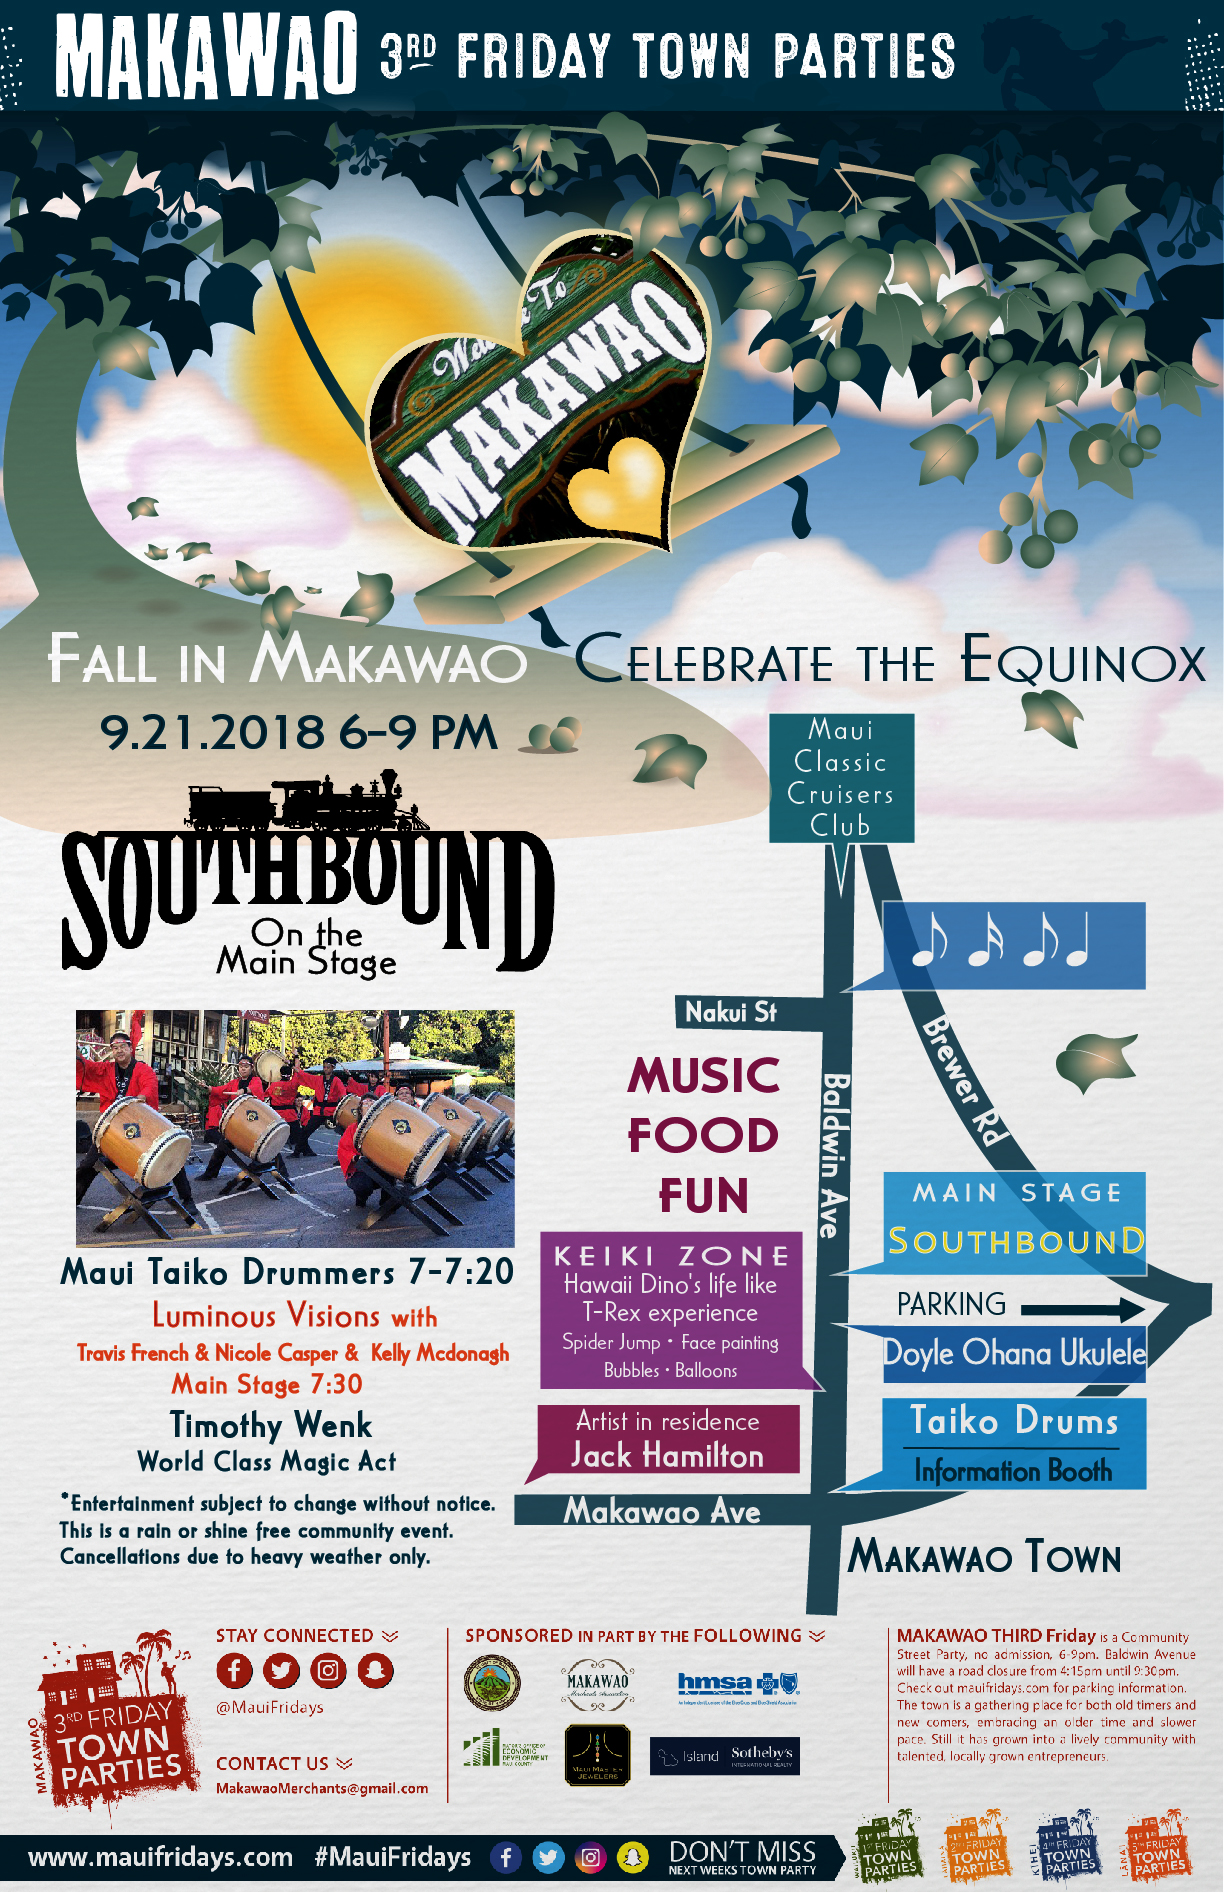 Makawao Third Friday Town Party Celebrates Fall